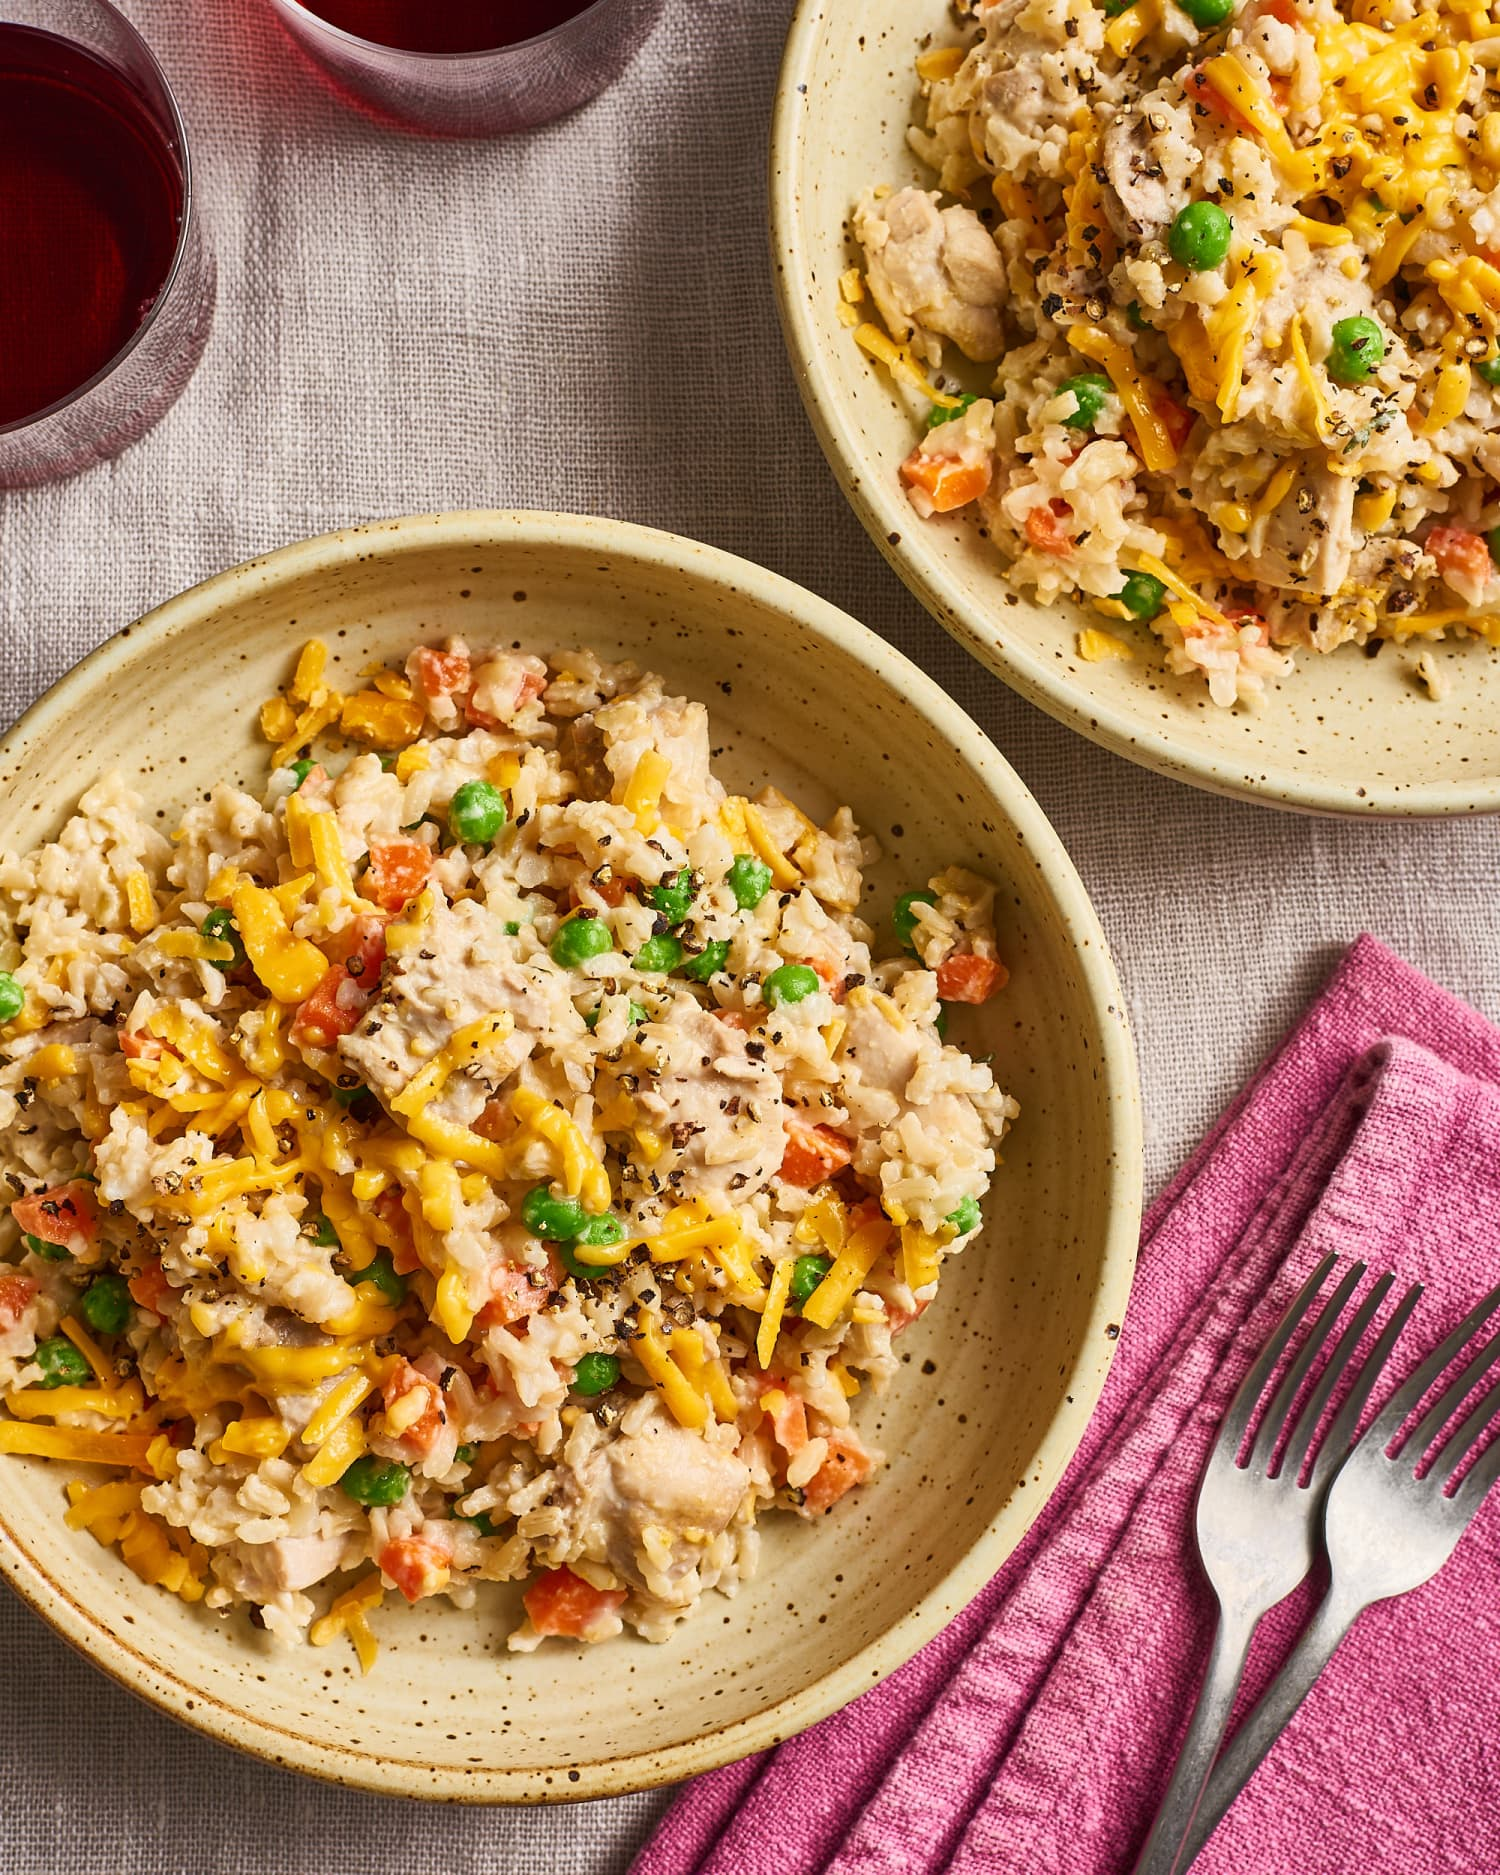 Recipe: The Best Creamy, Cheesy Slow Cooker Chicken and Rice